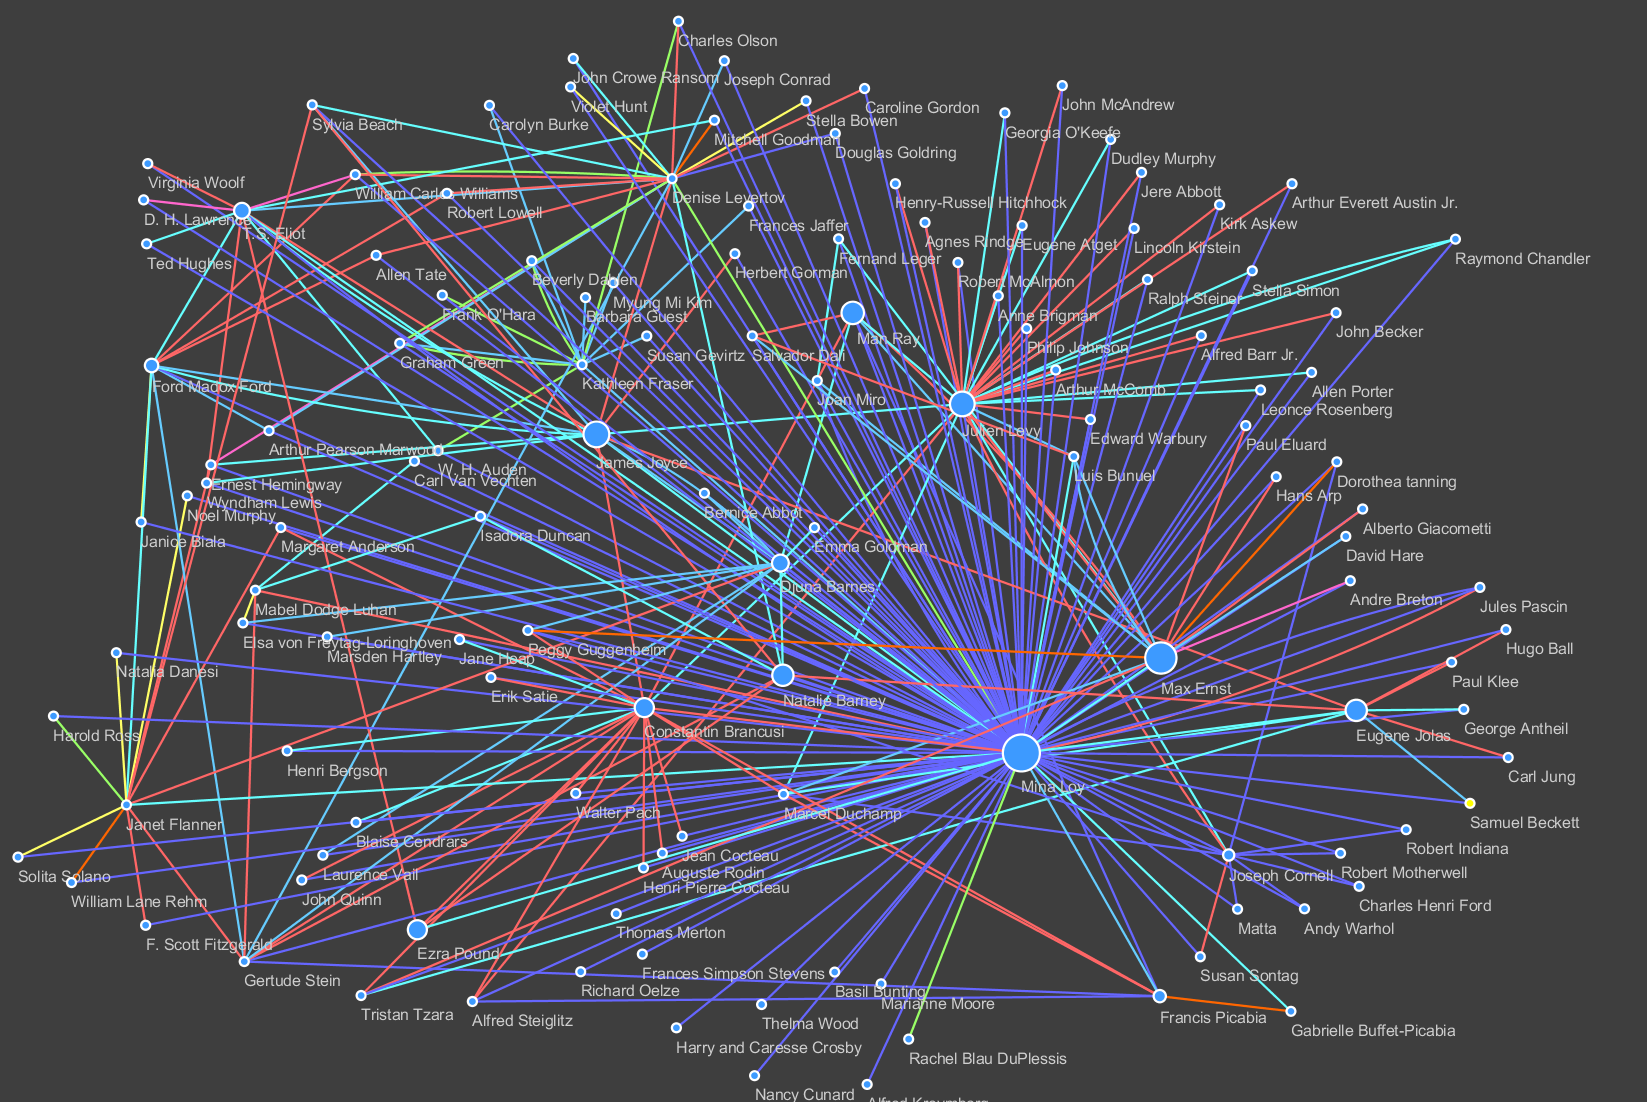 Mina Loy social network visualization